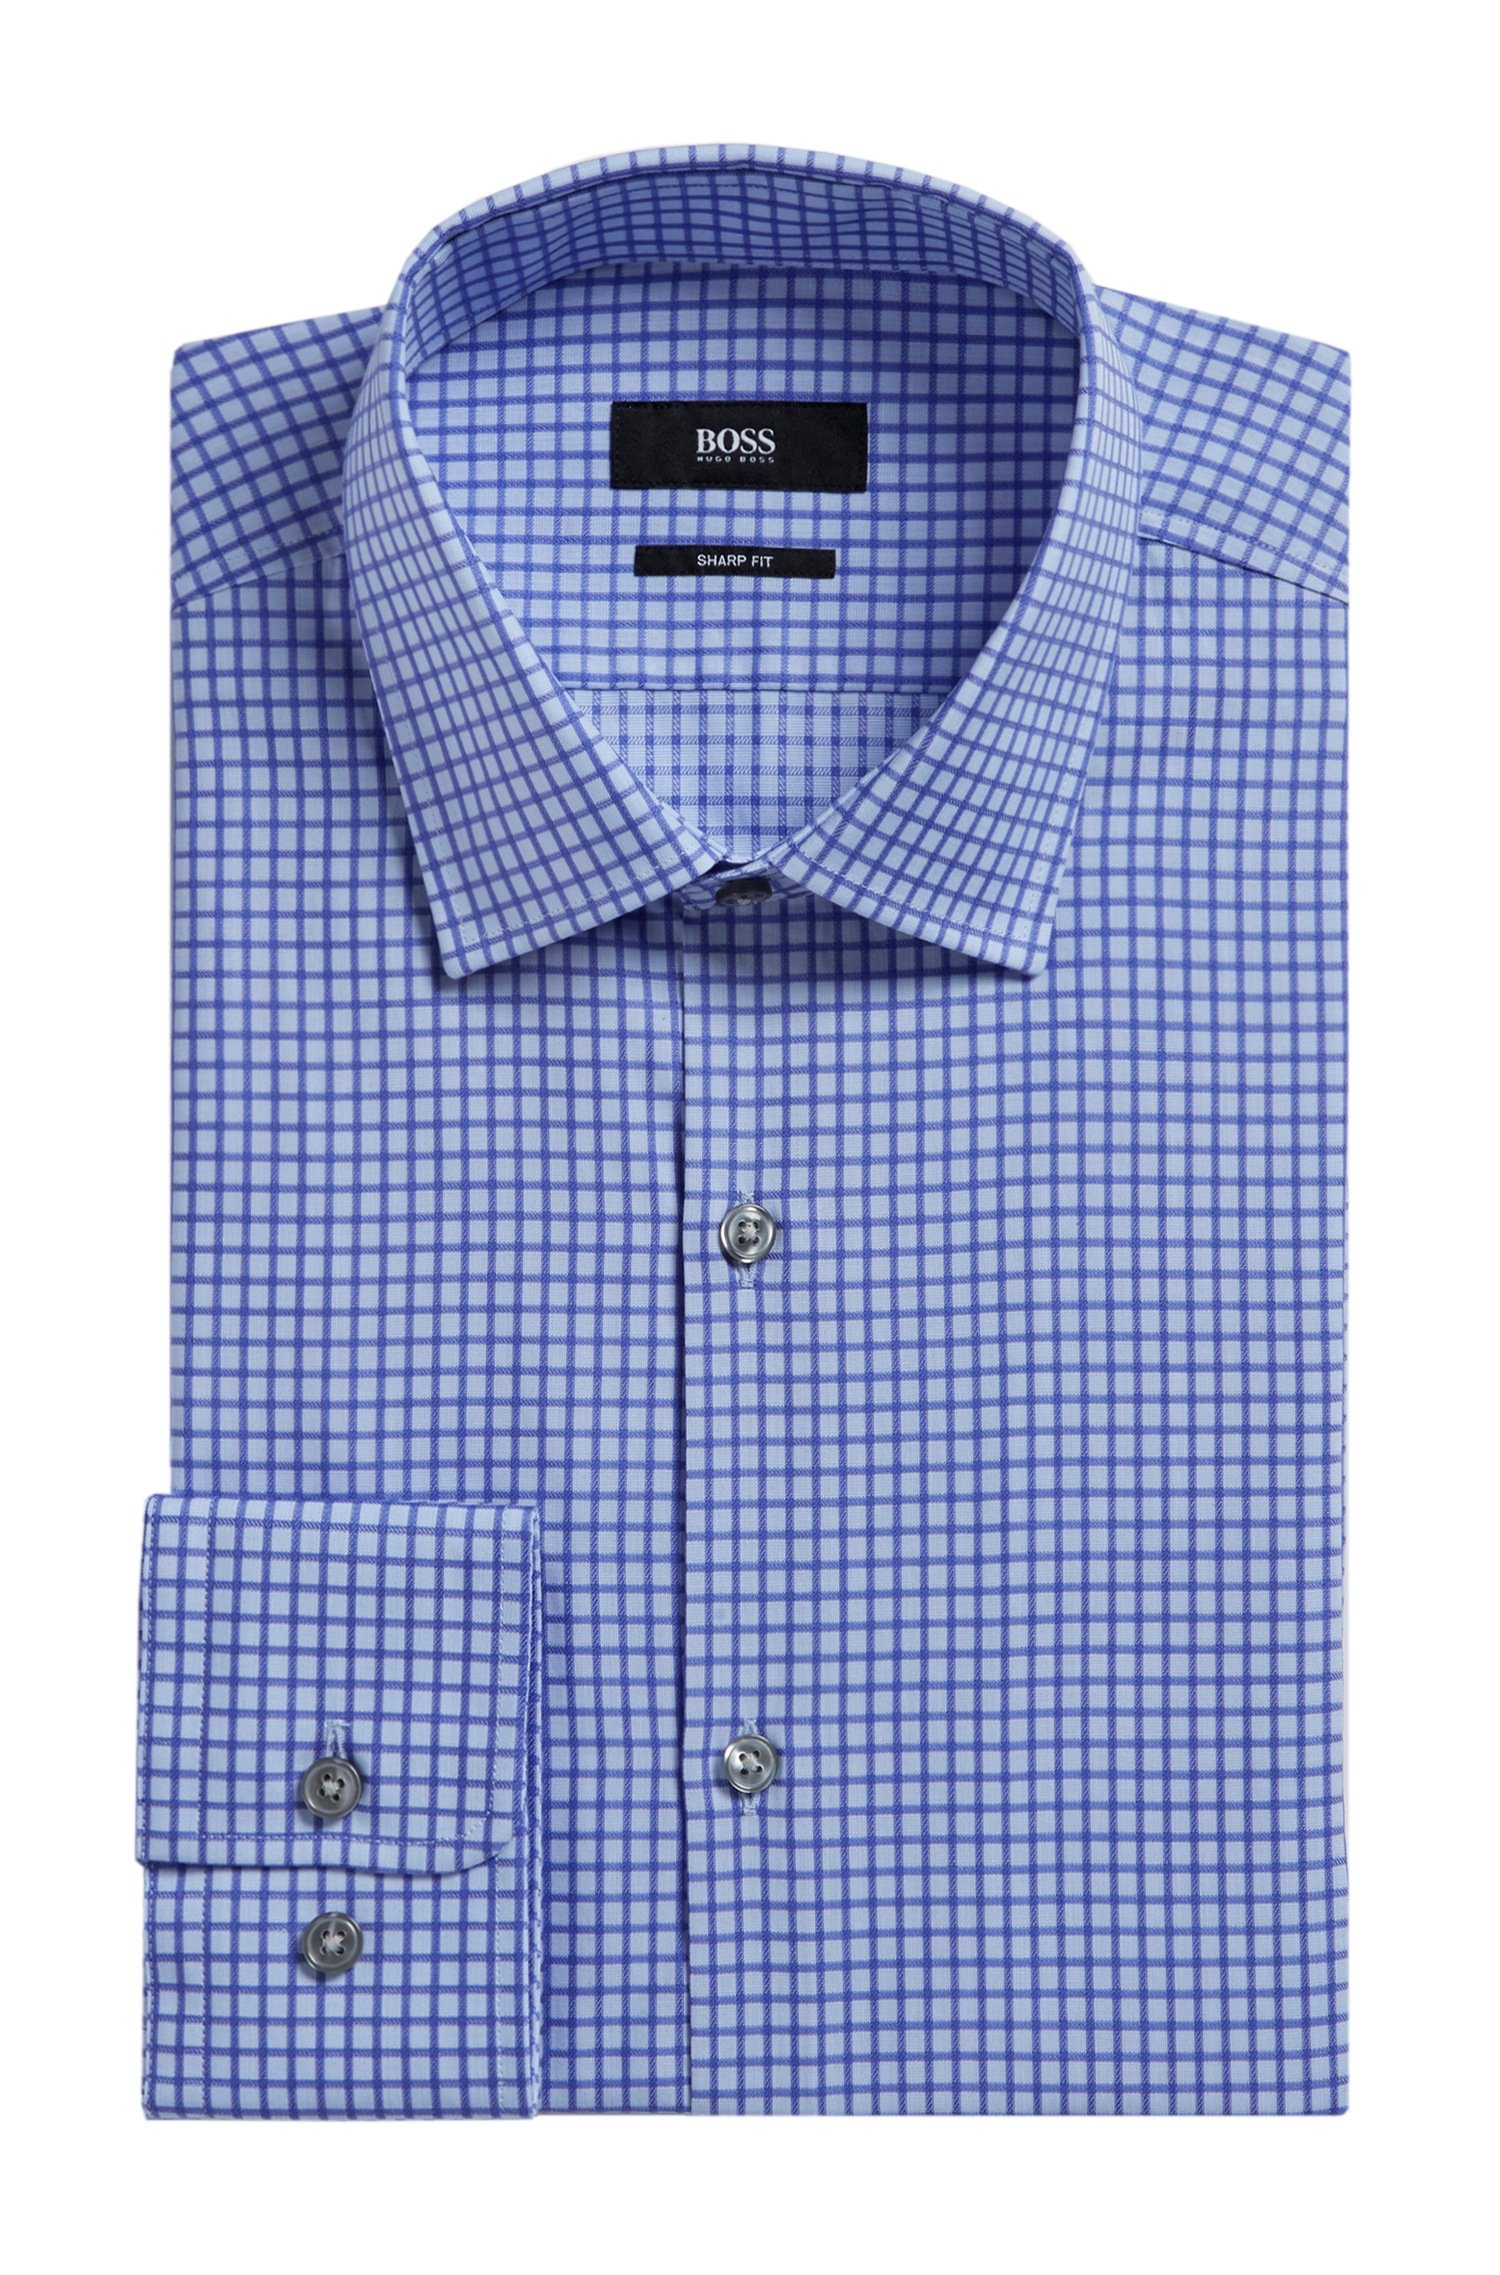 Hugo Boss Marley Grid Check Sharp Fit Dress Shirt (Purple, 15.5 34/35) by HUGO BOSS